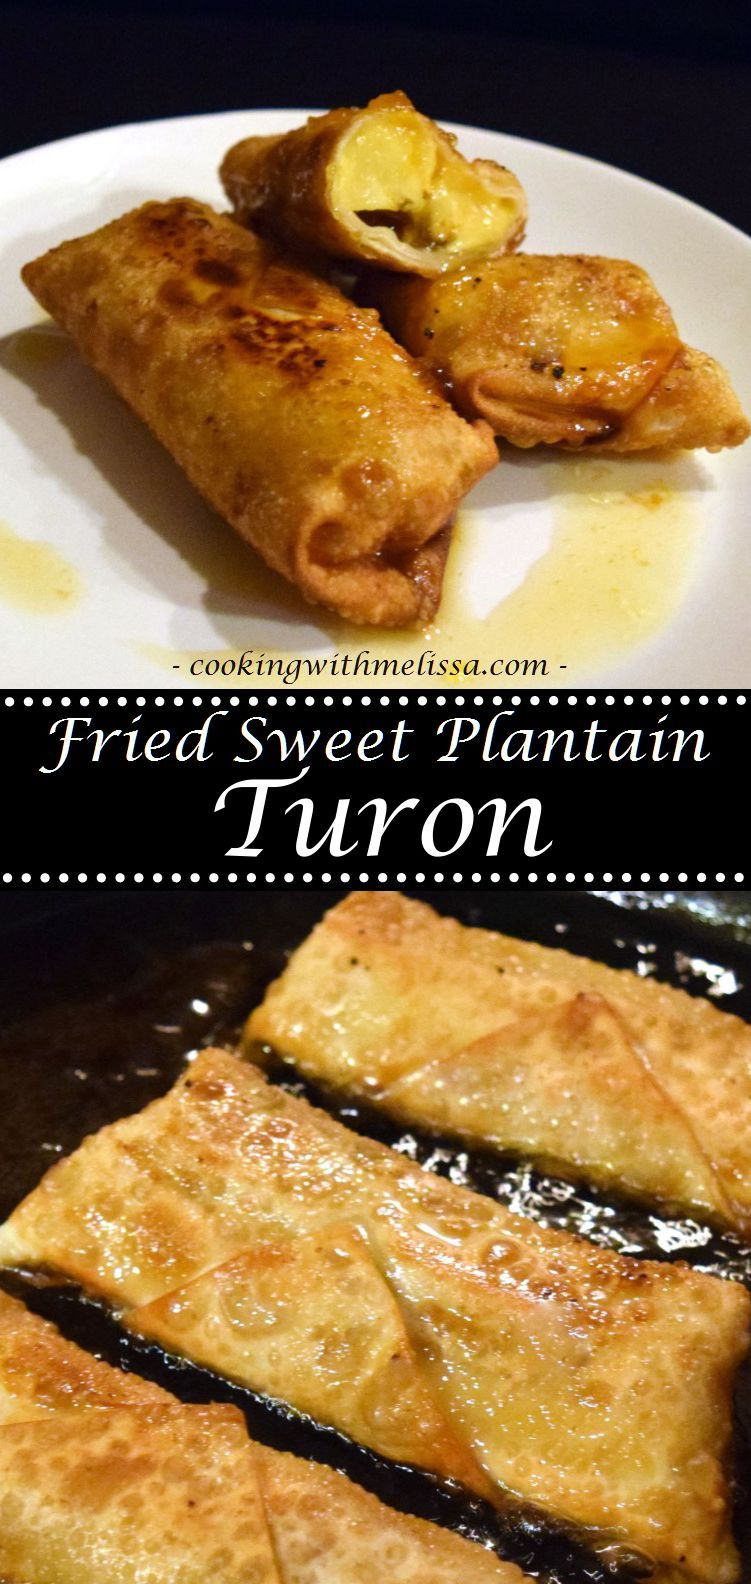 Fried sweet plantain turon apps yum pinterest filipino fried sweet plantain turon super easy and really sweet plantain recipe forumfinder Choice Image